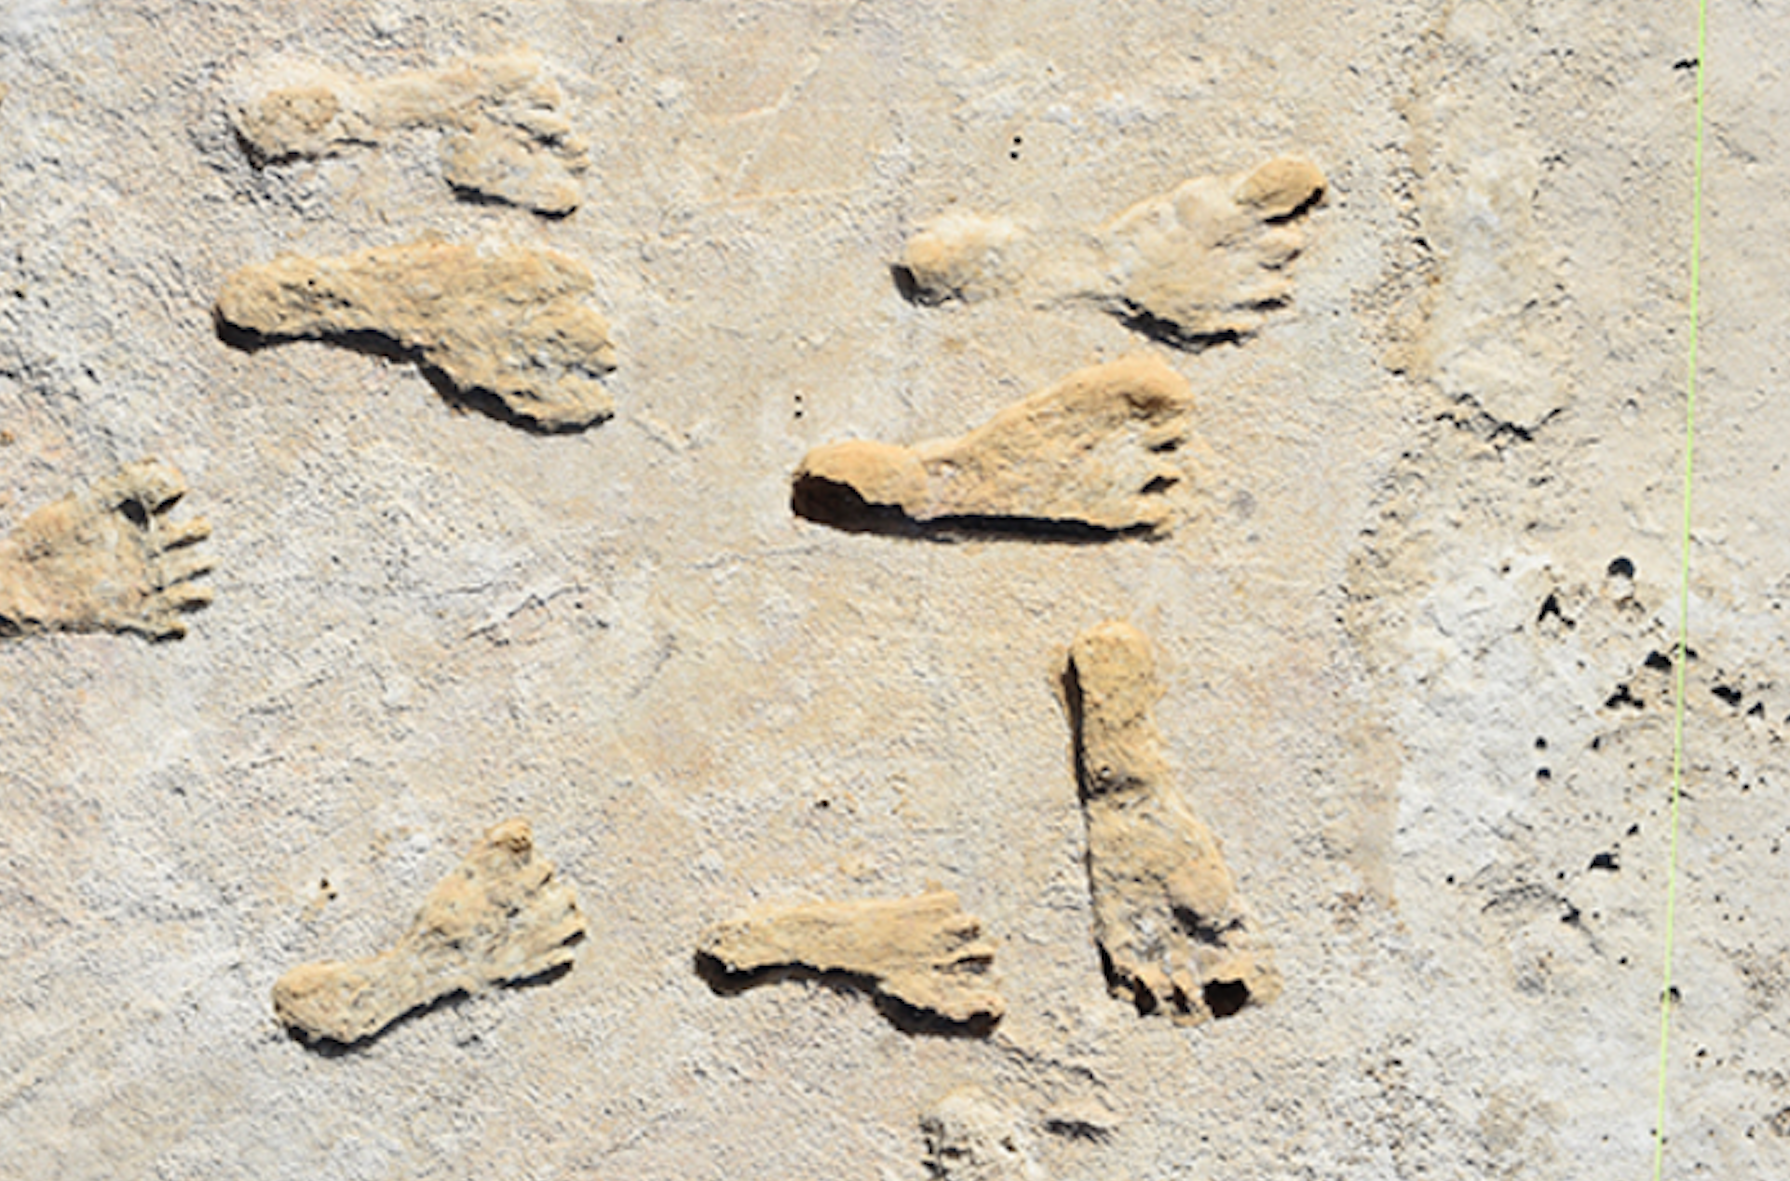 Scientists Identify Oldest Human Footprints in North America In Major Find thumbnail